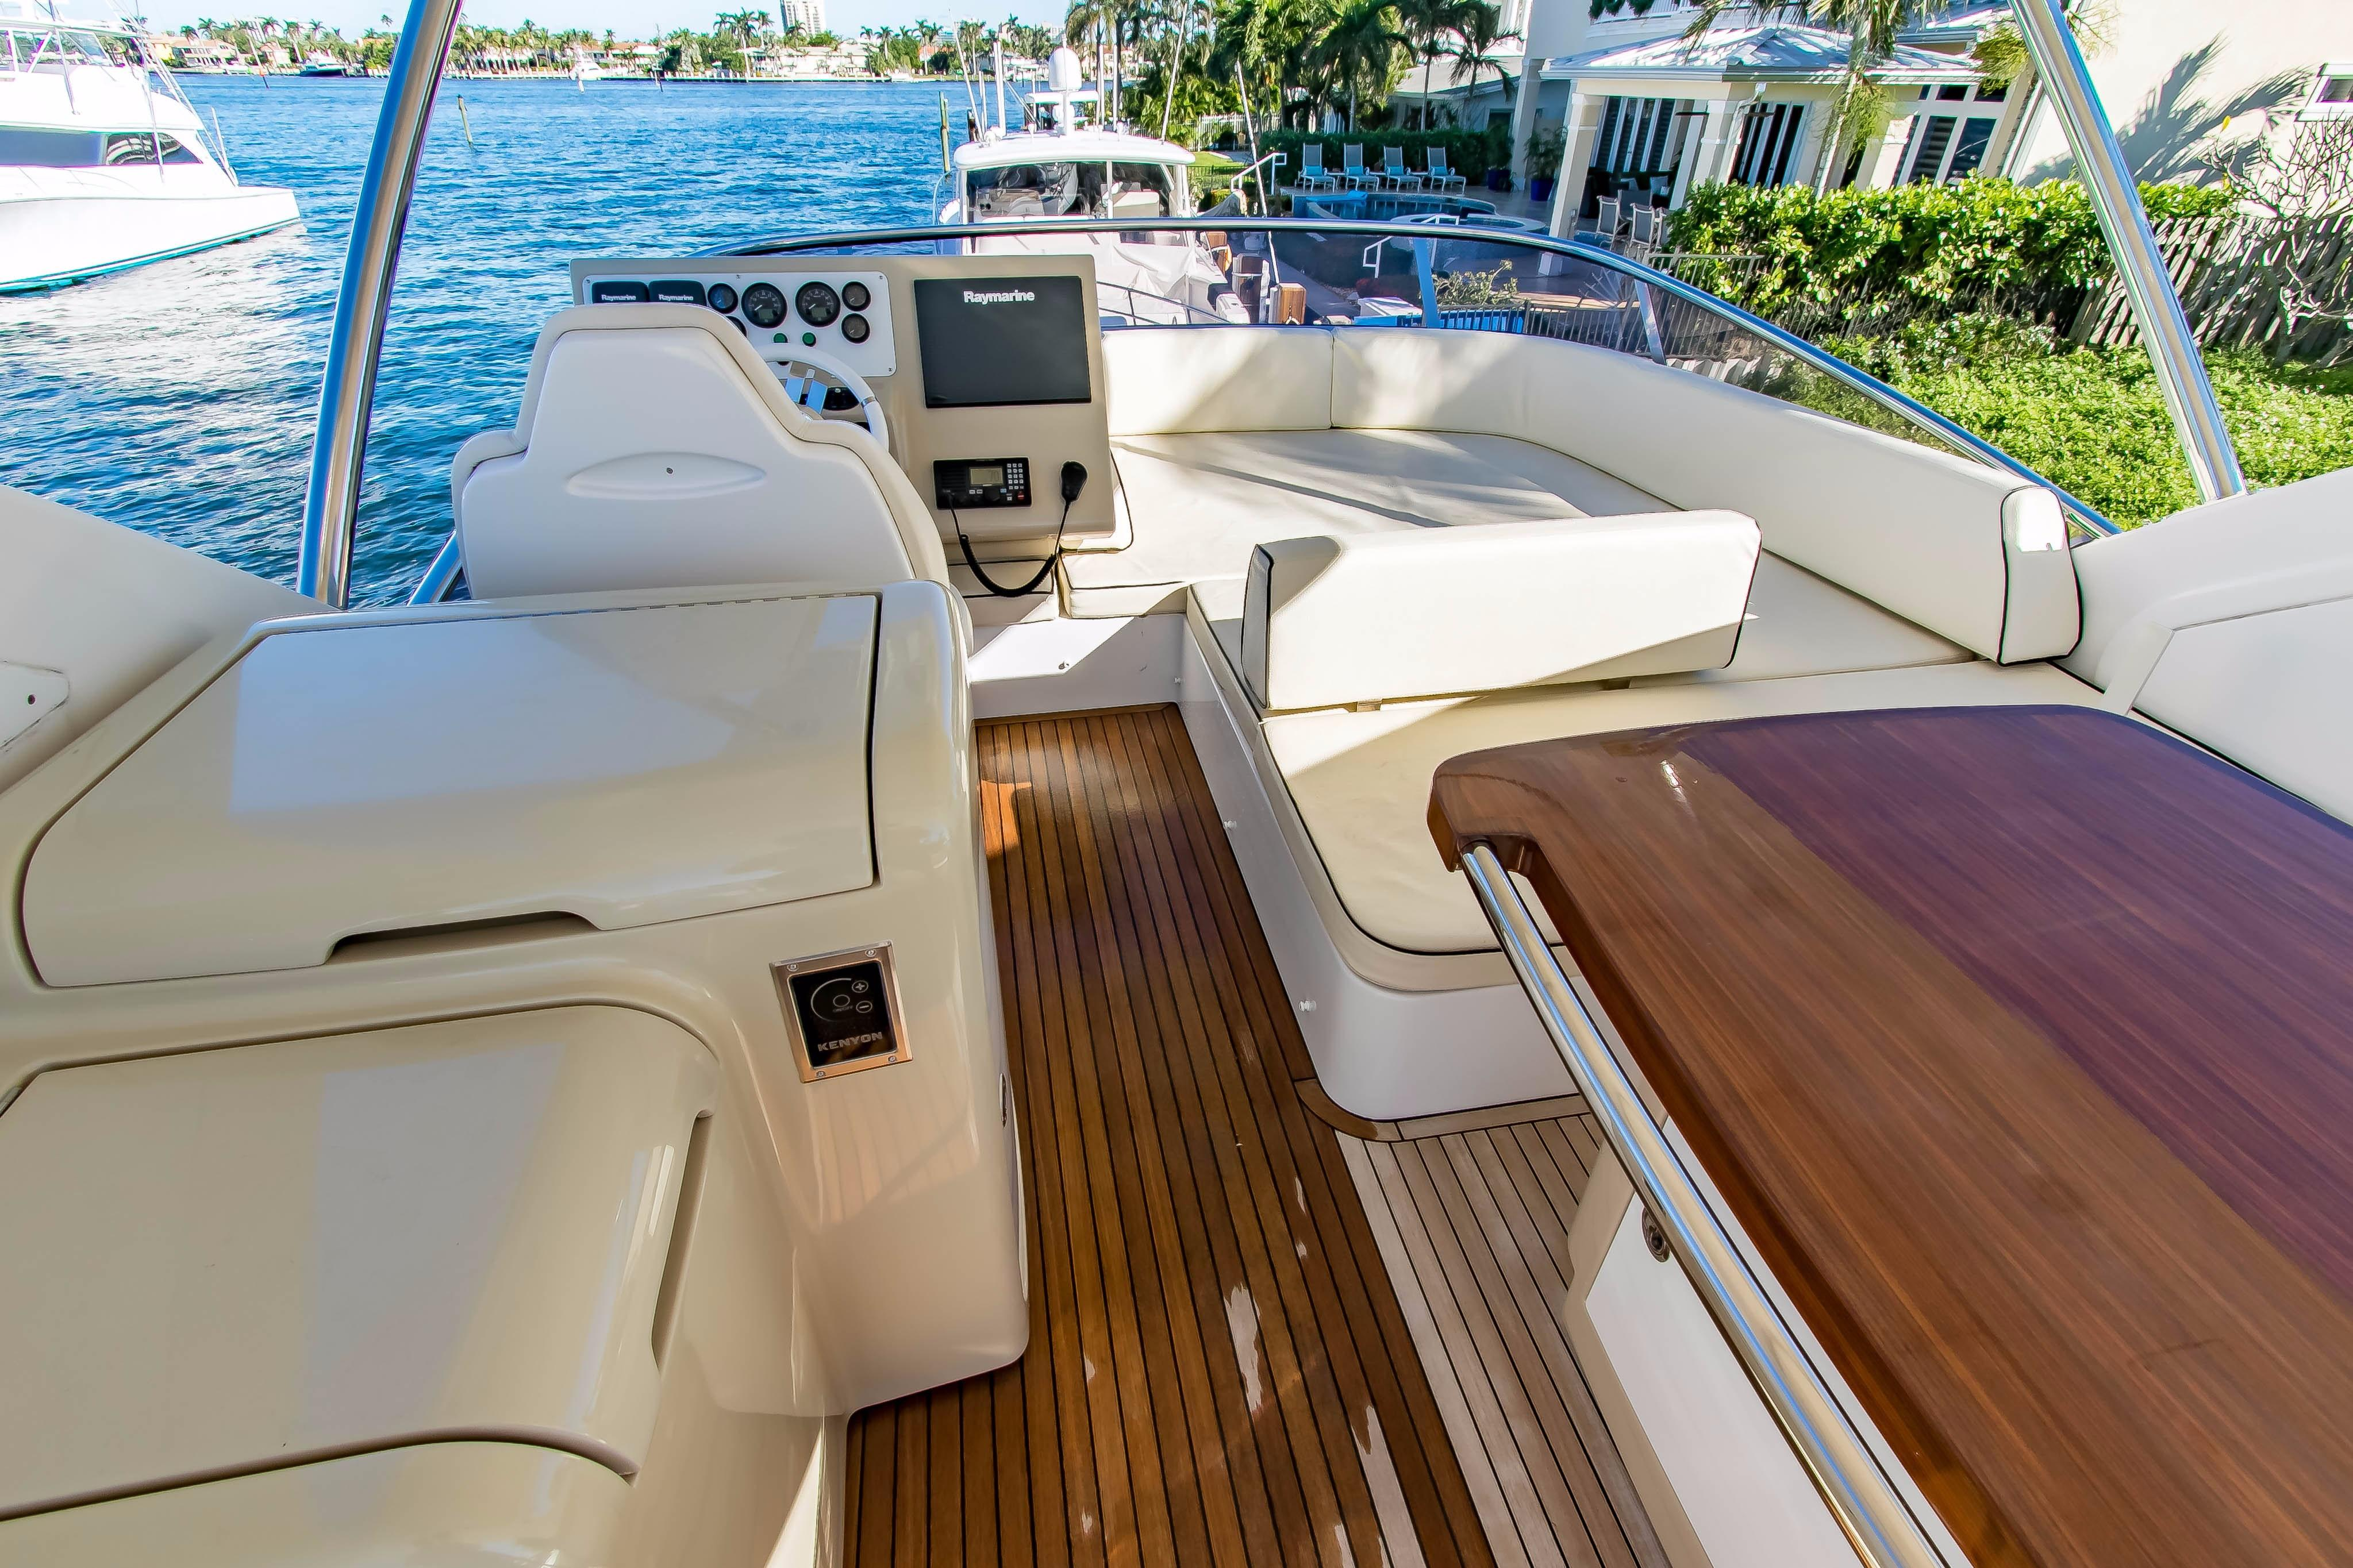 64 Azimut 2015 Trade In Ft Lauderdale Florida